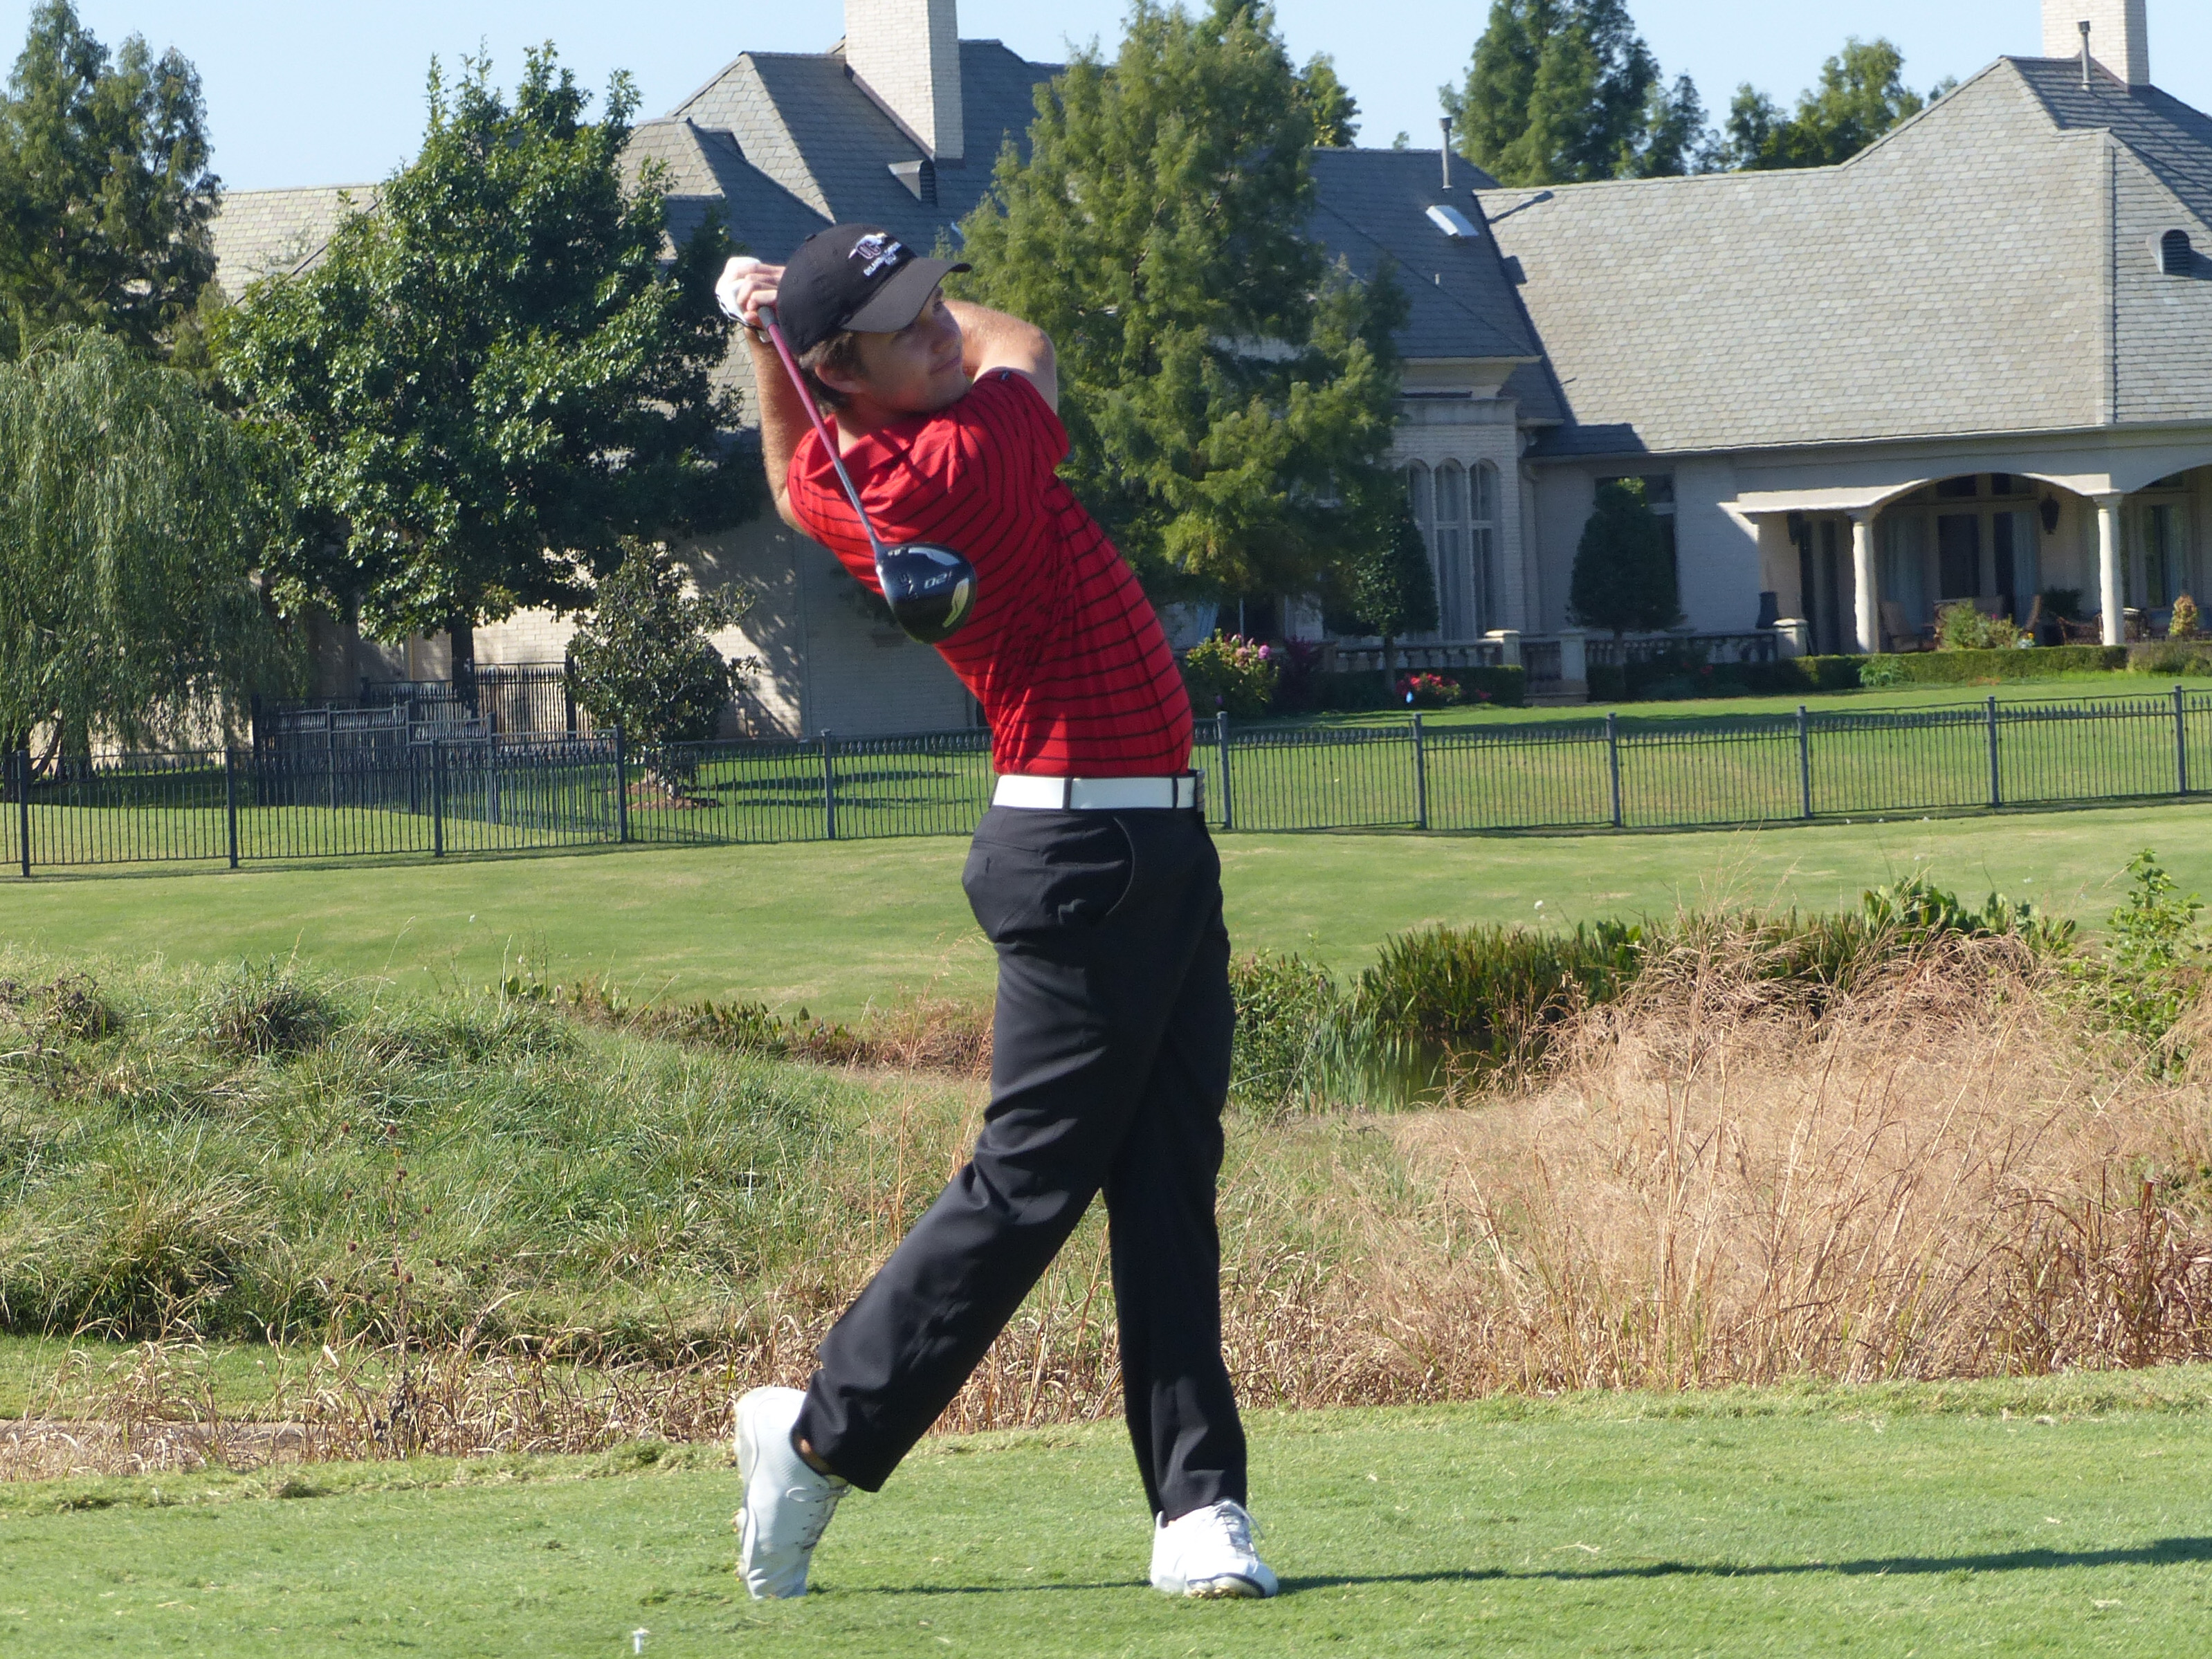 Alejandro Valenzuela tied for 12th at the Broncho Invitational on March 21 and 22. Photo by Murray Evans.